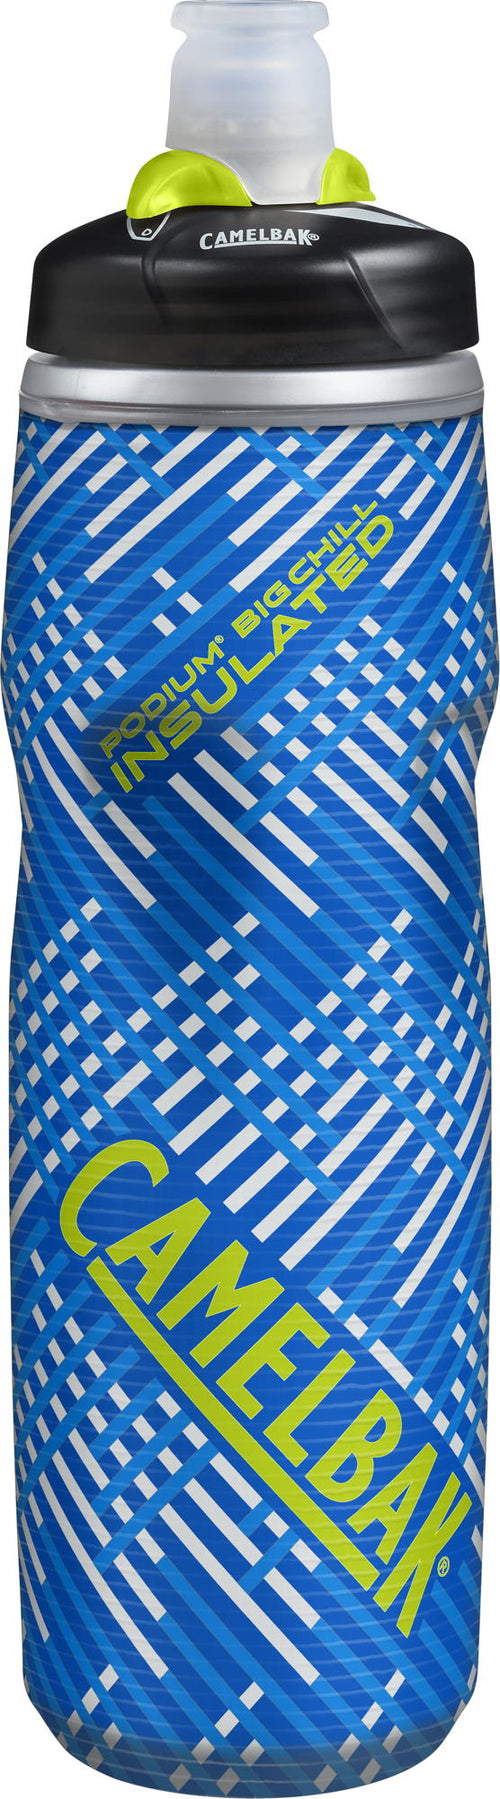 Podium Big Chill 25oz Bottle-Cayman